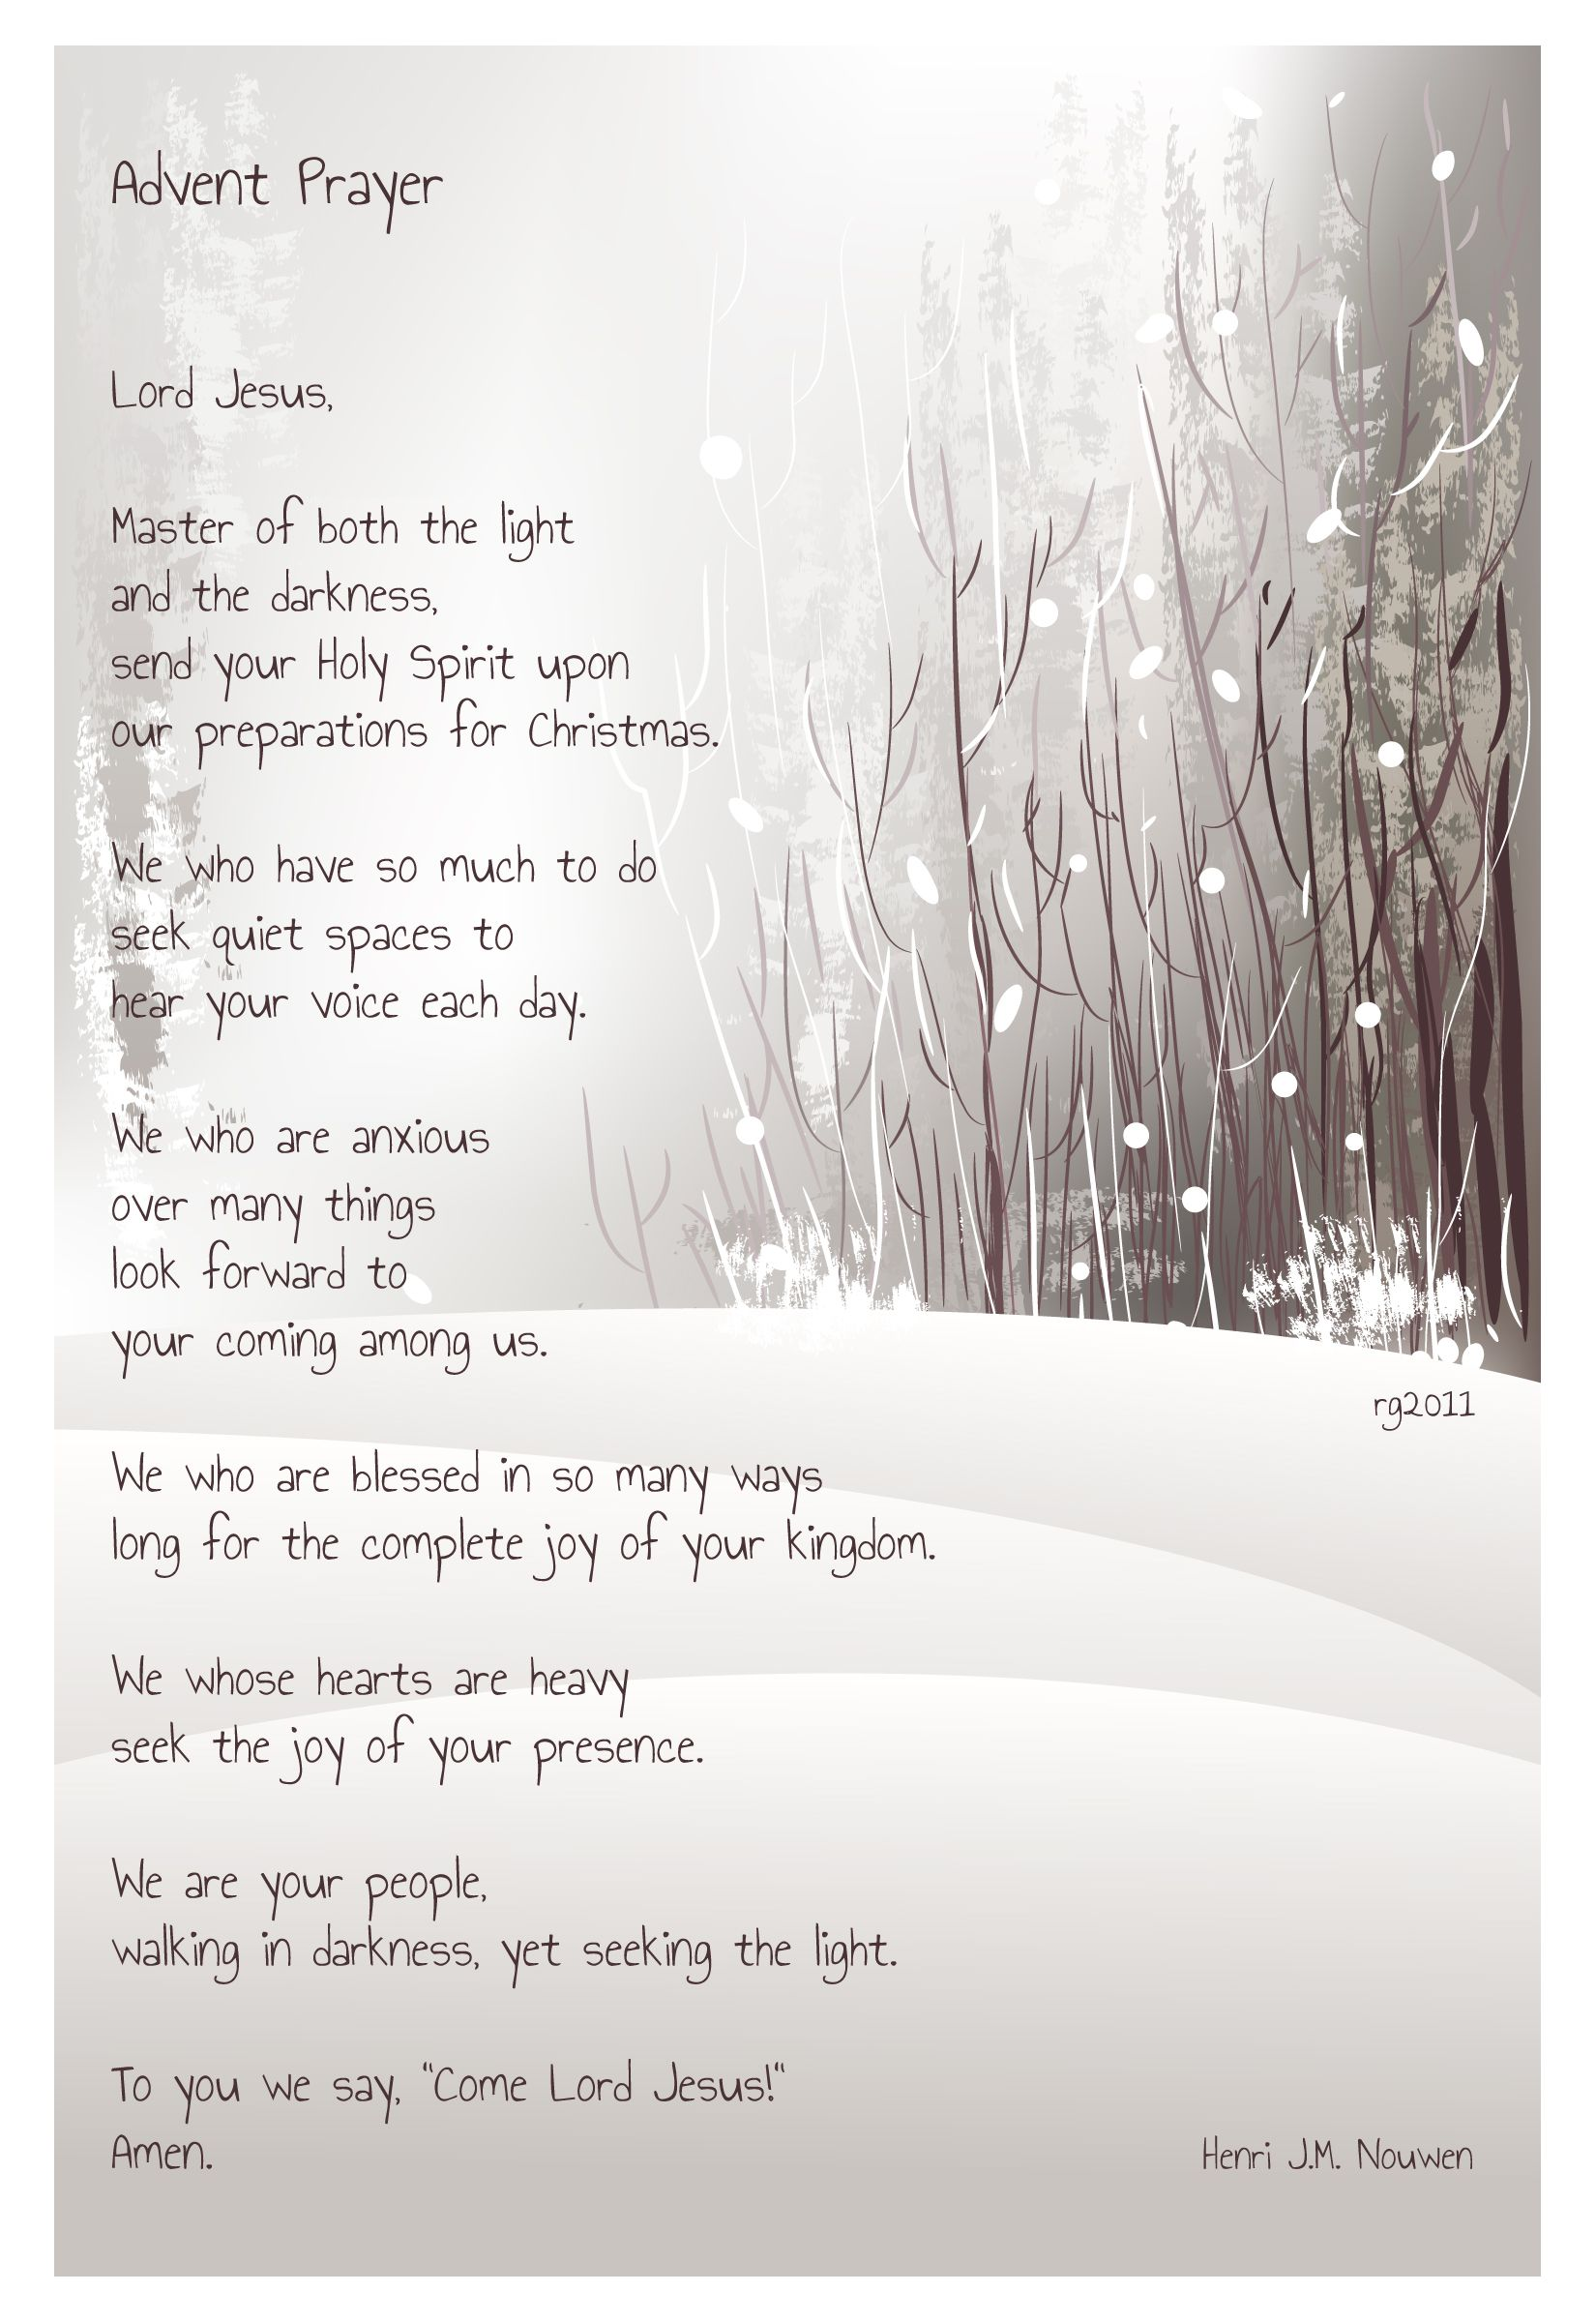 Henri J M Nouwen Advent Prayer Lord Jesus Send Your Holy Spirit Upon Our Preparations For Christmas In 2020 Advent Prayers Christmas Prayer Nouwen